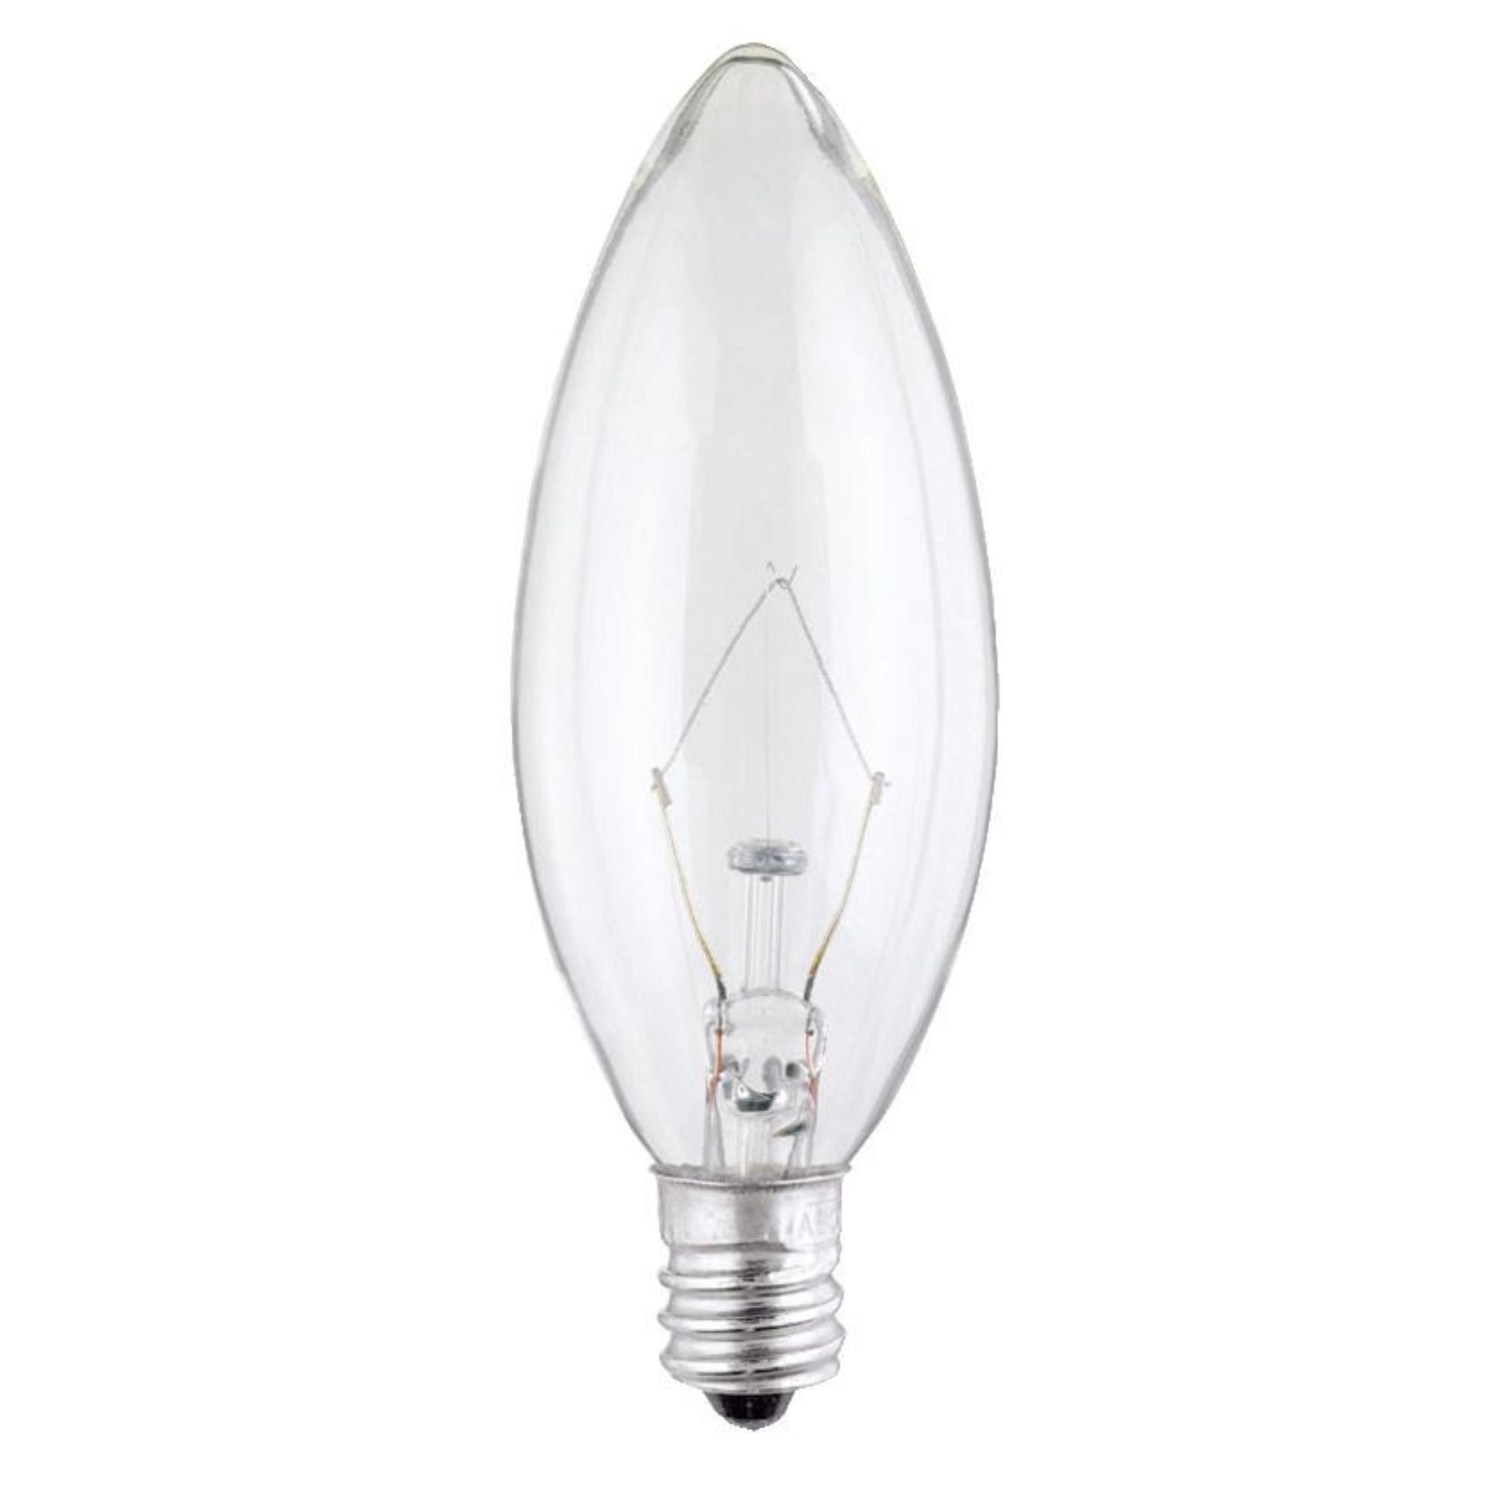 Westinghouse  60 watts B10  Incandescent Bulb  615 lumens Warm White  Decorative  2 pk